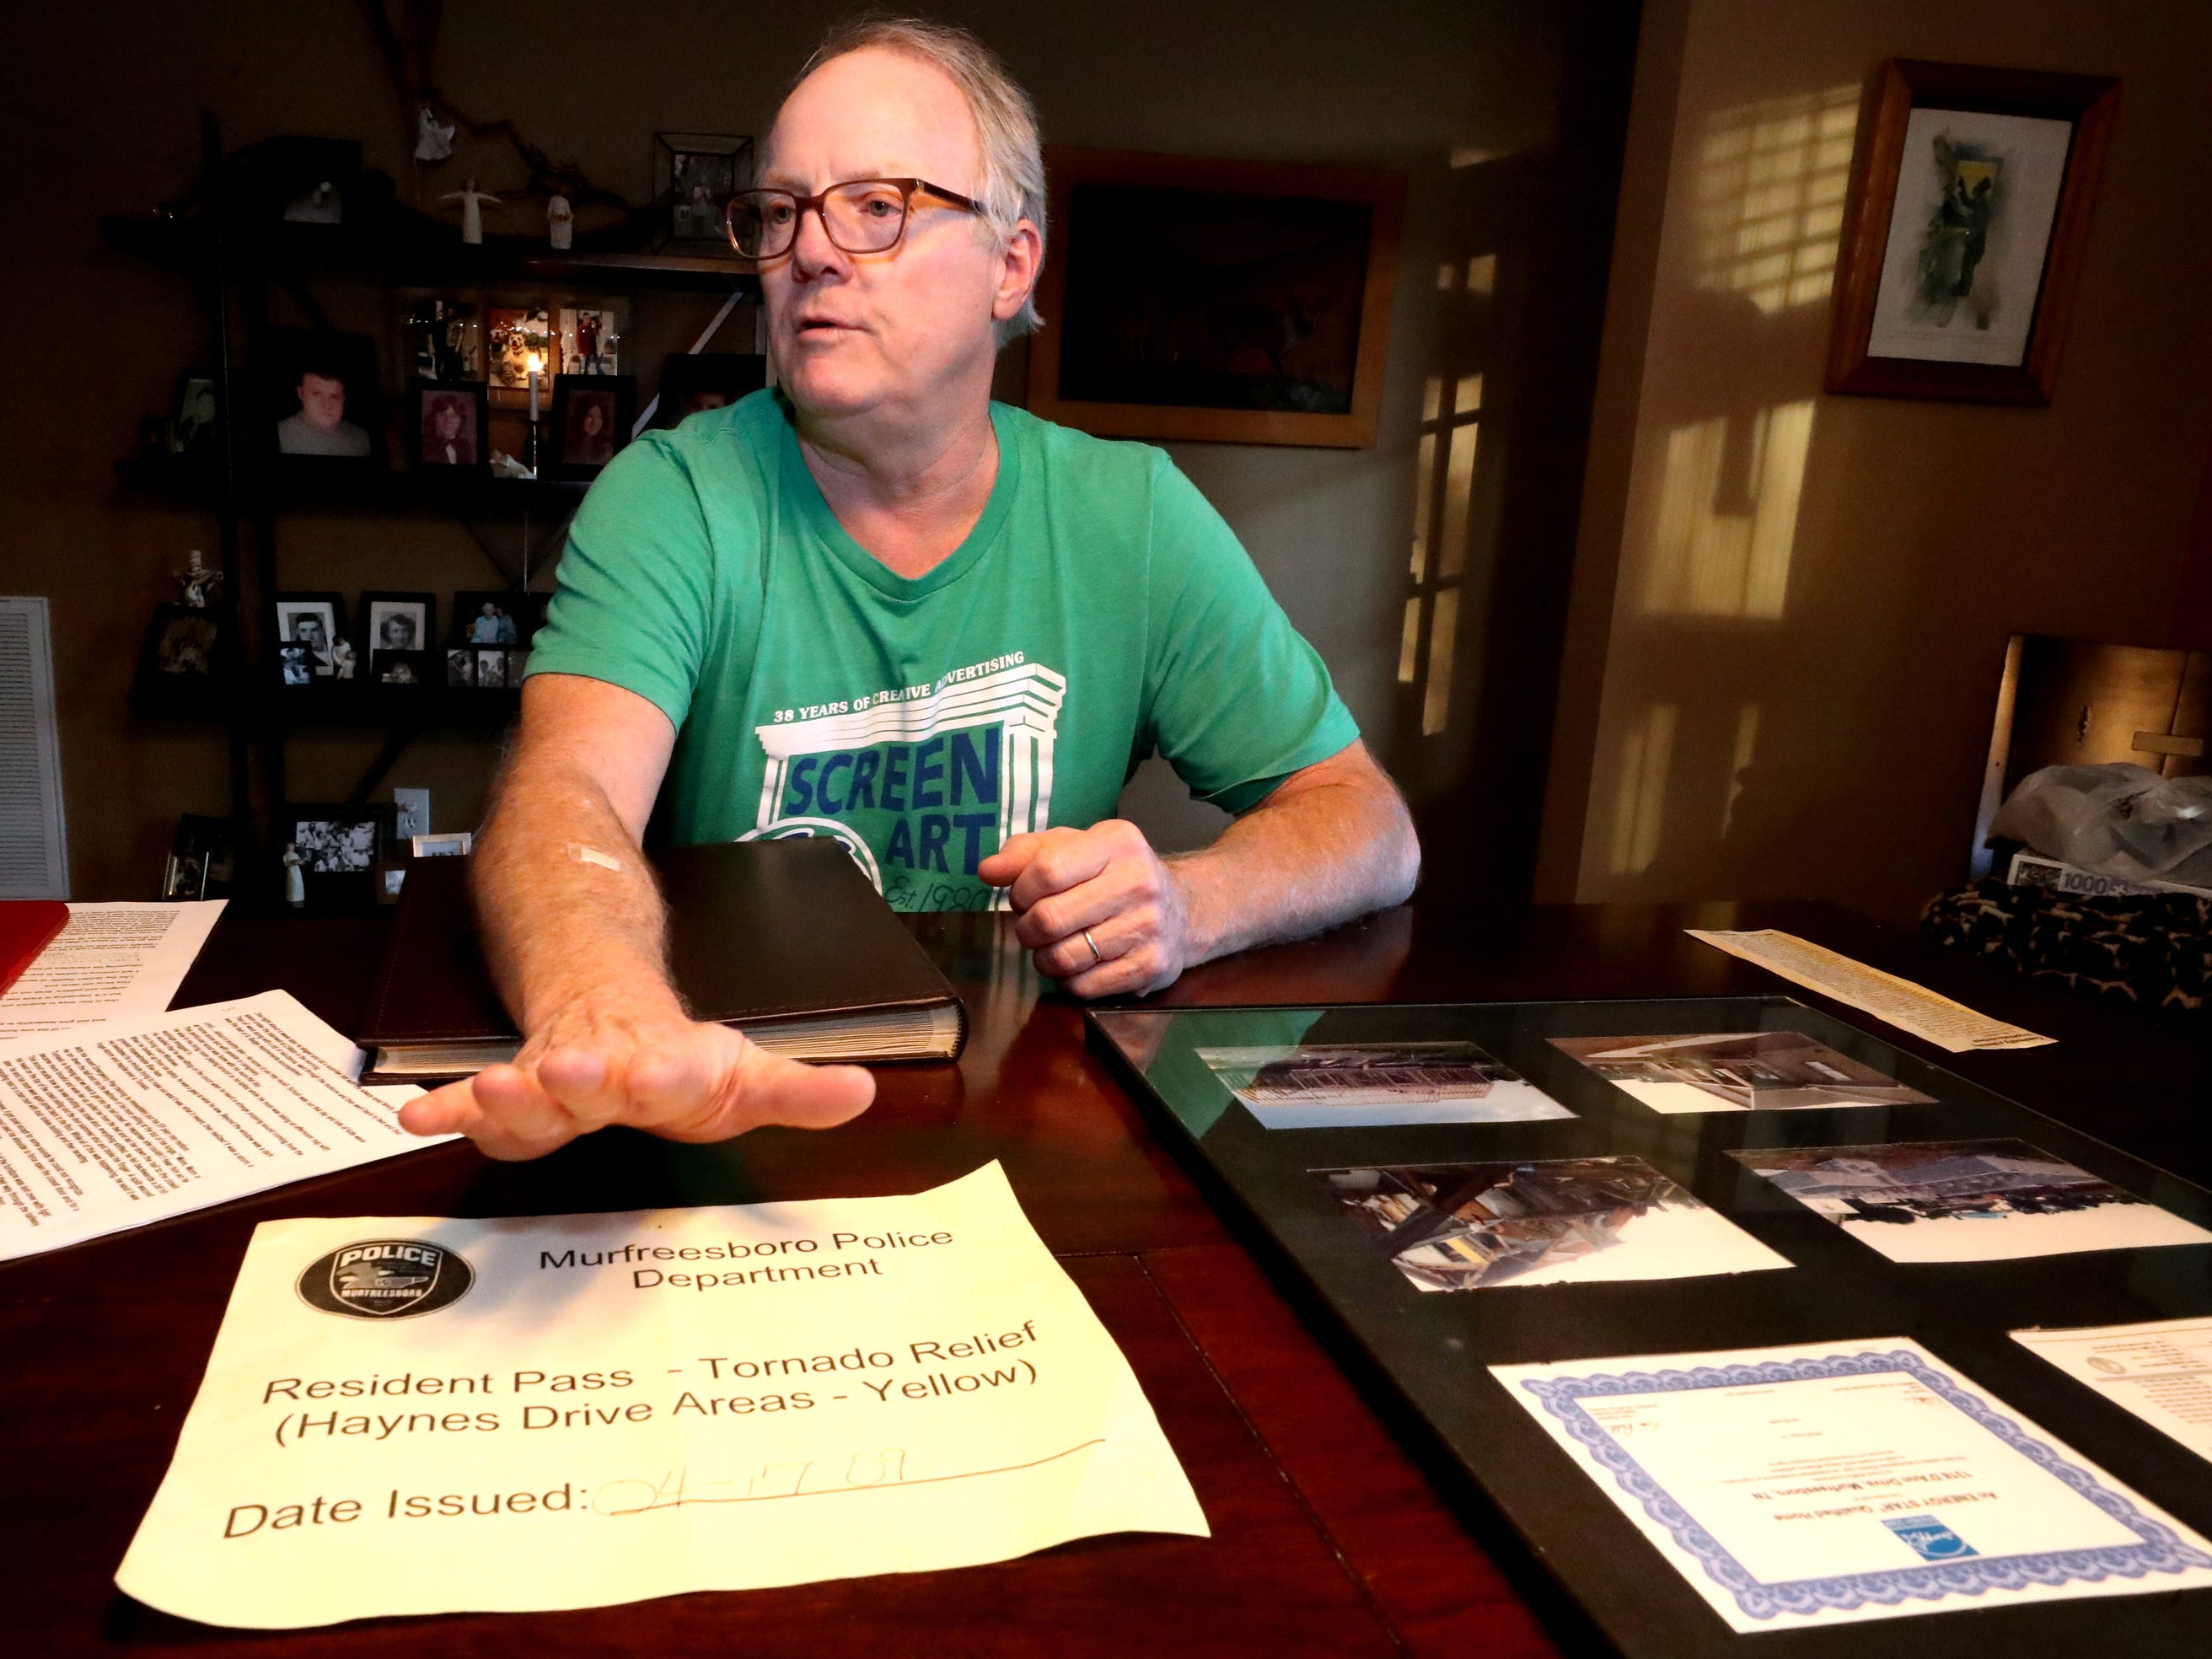 Mike Bickford shows off the sign that he put in his vehicle after the 2009 Good Friday tornado destroyed his home that allowed him to get in and out of his tornado damaged neighborhood, during an interview on Wednesday March 27, 2019.